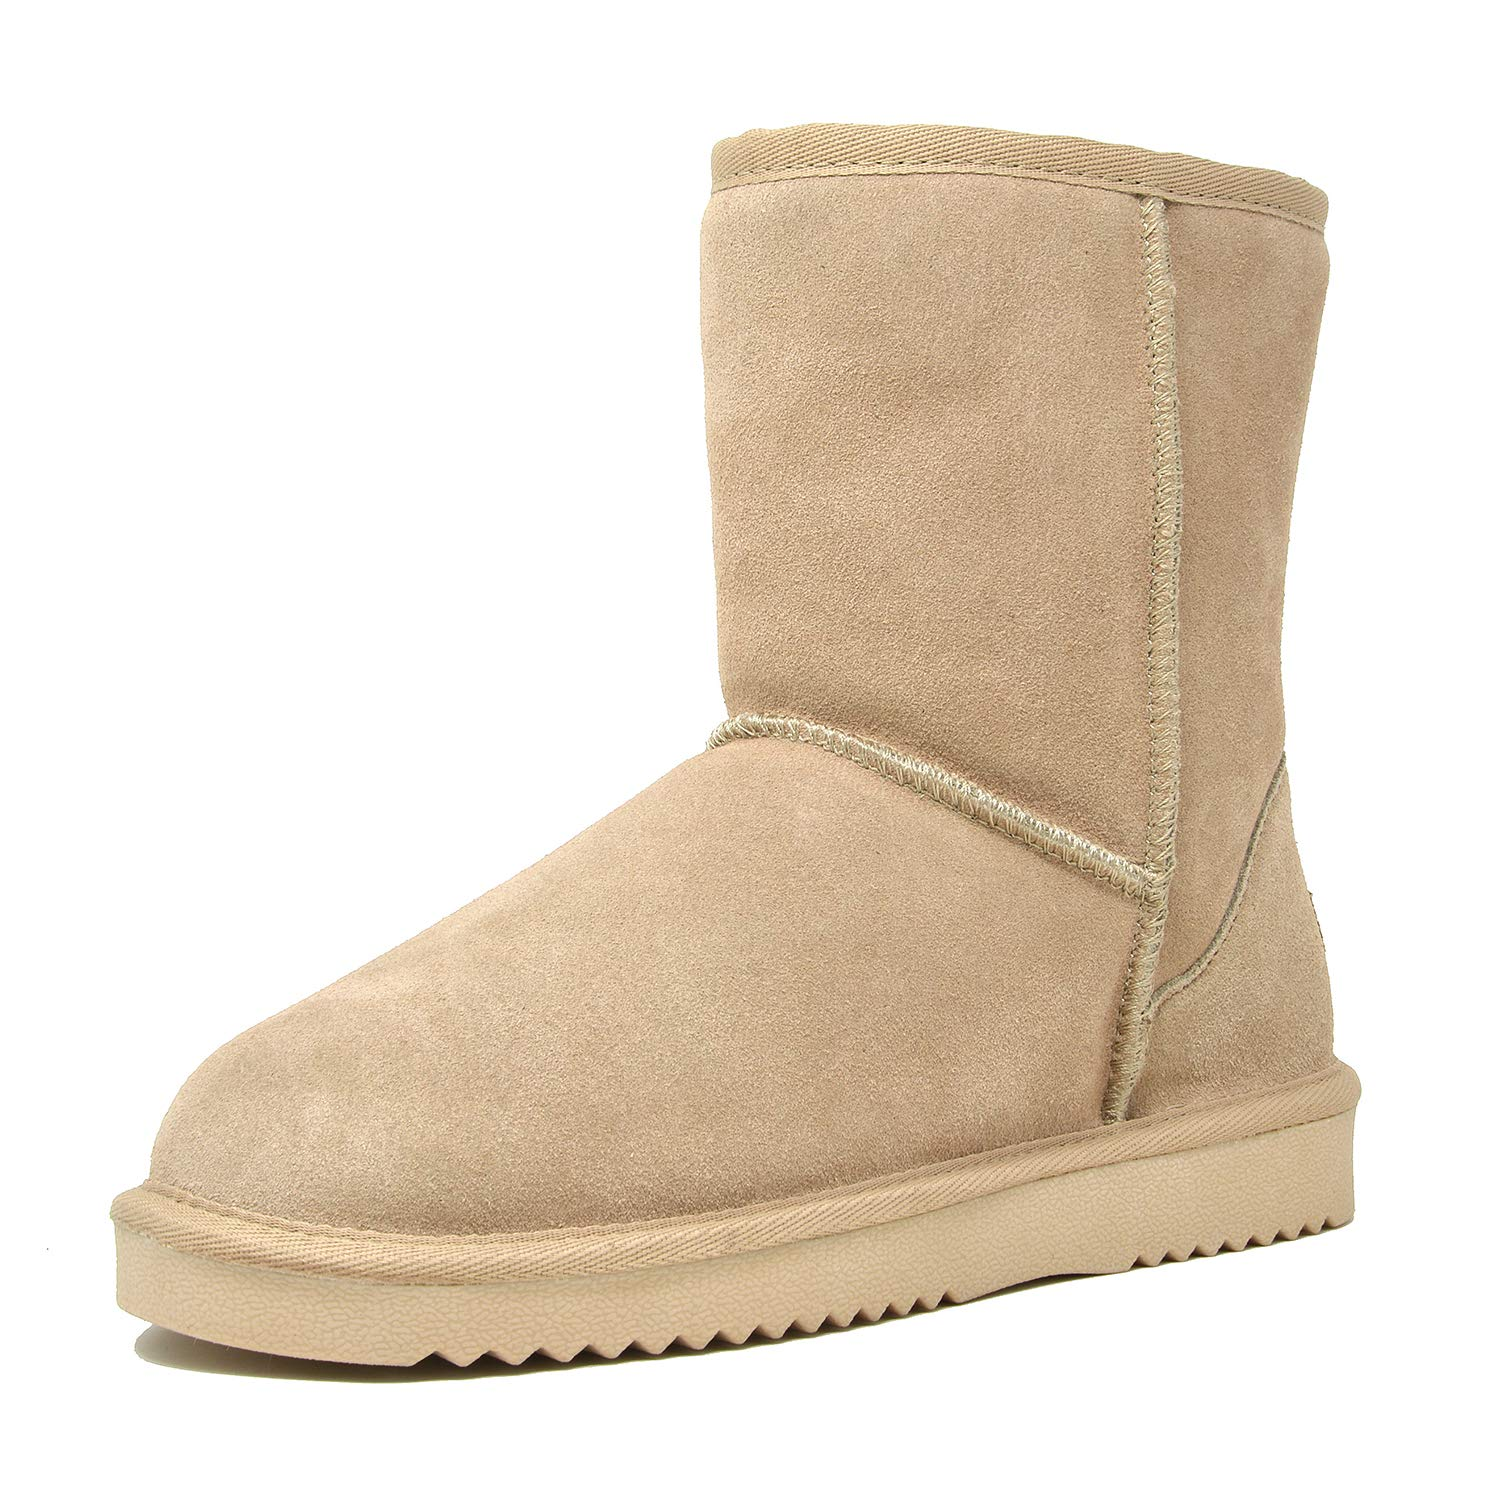 Sand DREAM PAIRS Women's Shorty Sheepskin Fur Ankle High Winter Snow Boots